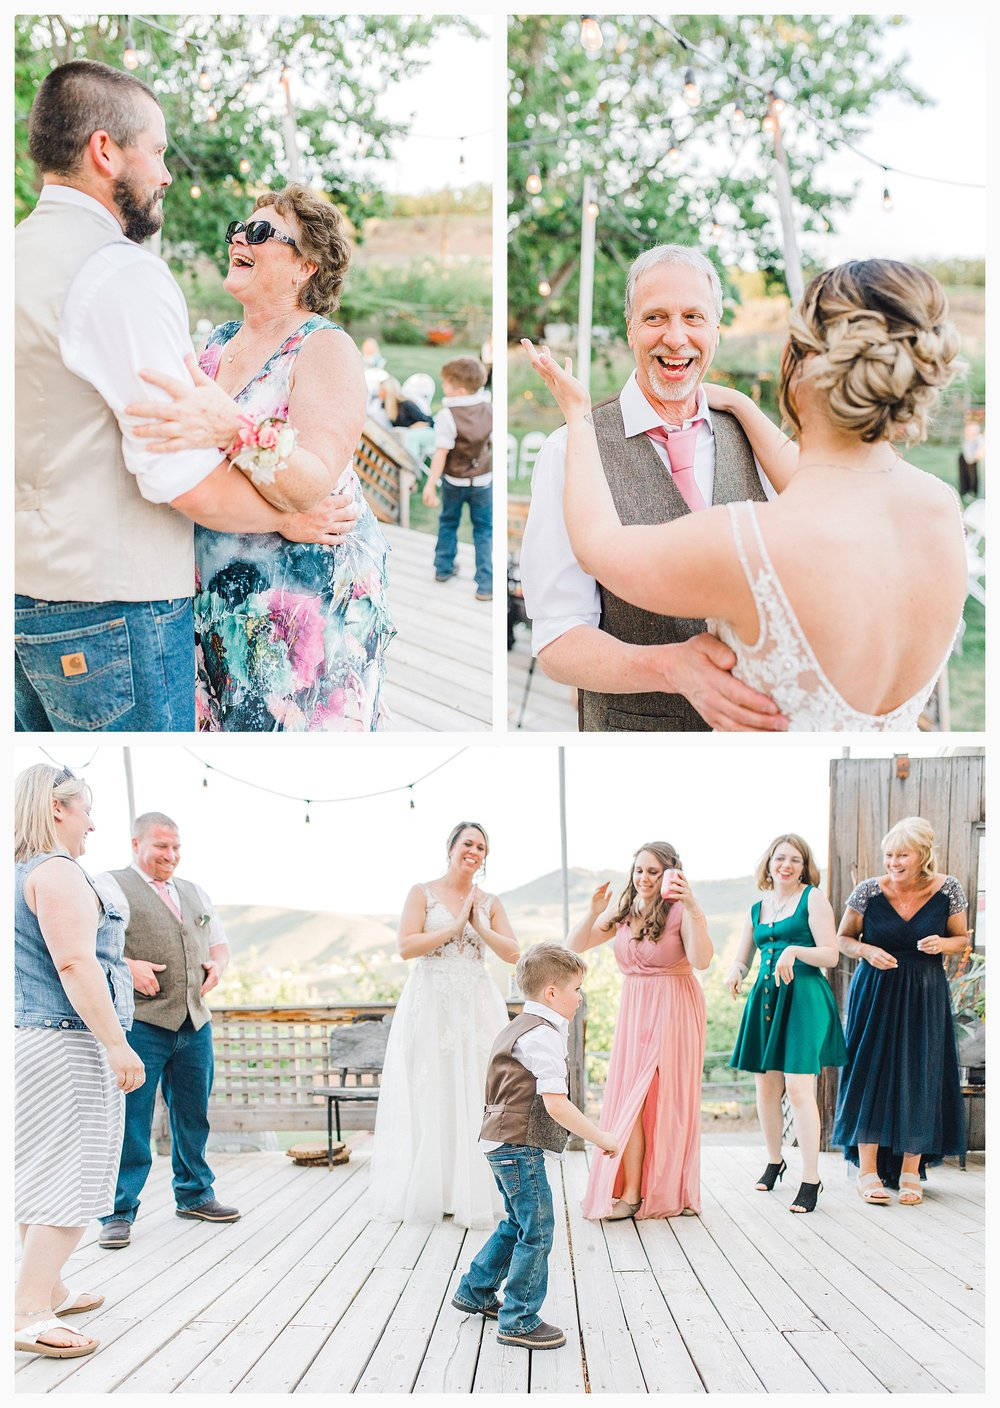 Rustic barn wedding in Wenatchee Washington at Sunshine Ranch on Easy Street, Emma Rose Company Seattle PNW Light and Airy Wedding Photographer_0111.jpg